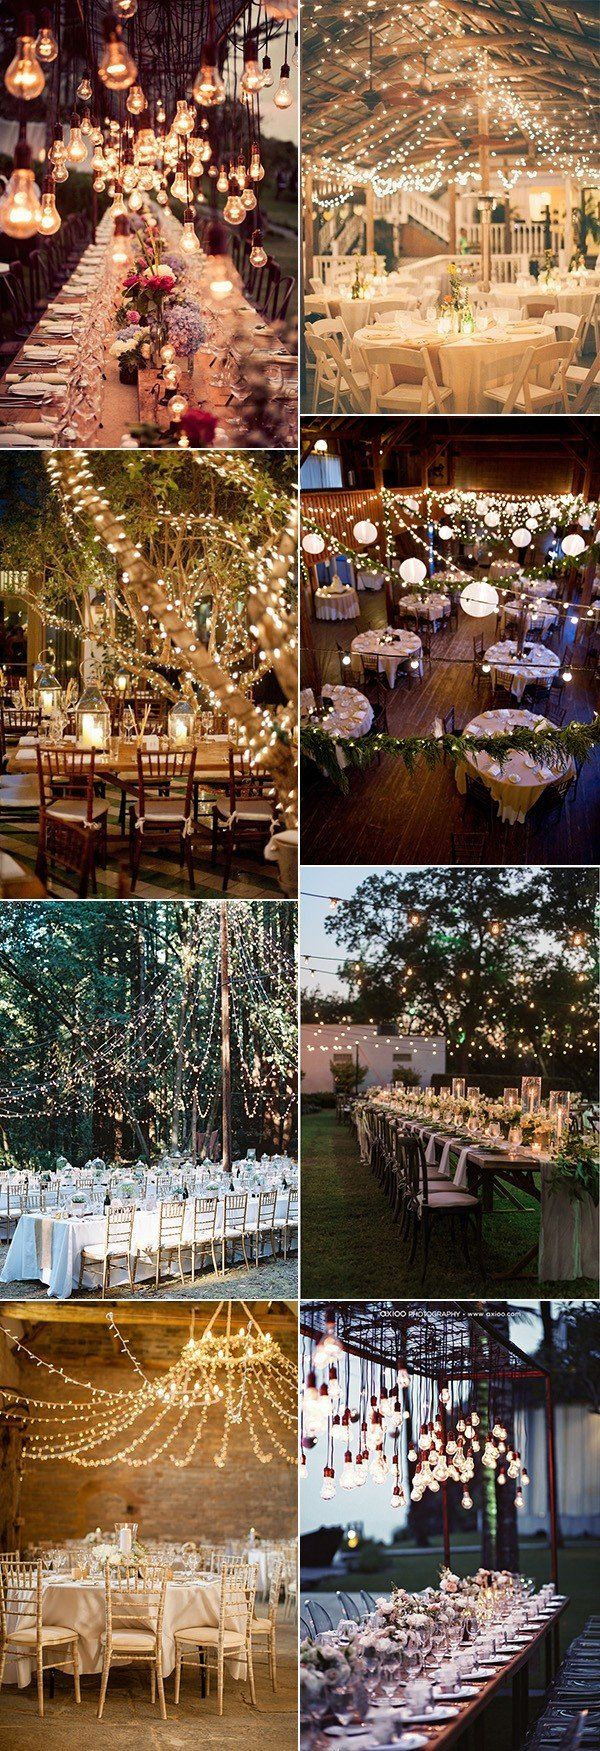 70+ Amazing Fall Wedding Ideas for 2019  Page 3 of 4 is part of Wedding reception table decorations - Fall Pumpkin Decorations Happy Wedd   Brit   Belina Bridesmaid   Wedding Wire   Something Turquoise Reception Decors with Lights Bridal Musings   Wedding Party App   Wedding Omania   Wedding Chicks   Fab Mood   Intimate Weddings